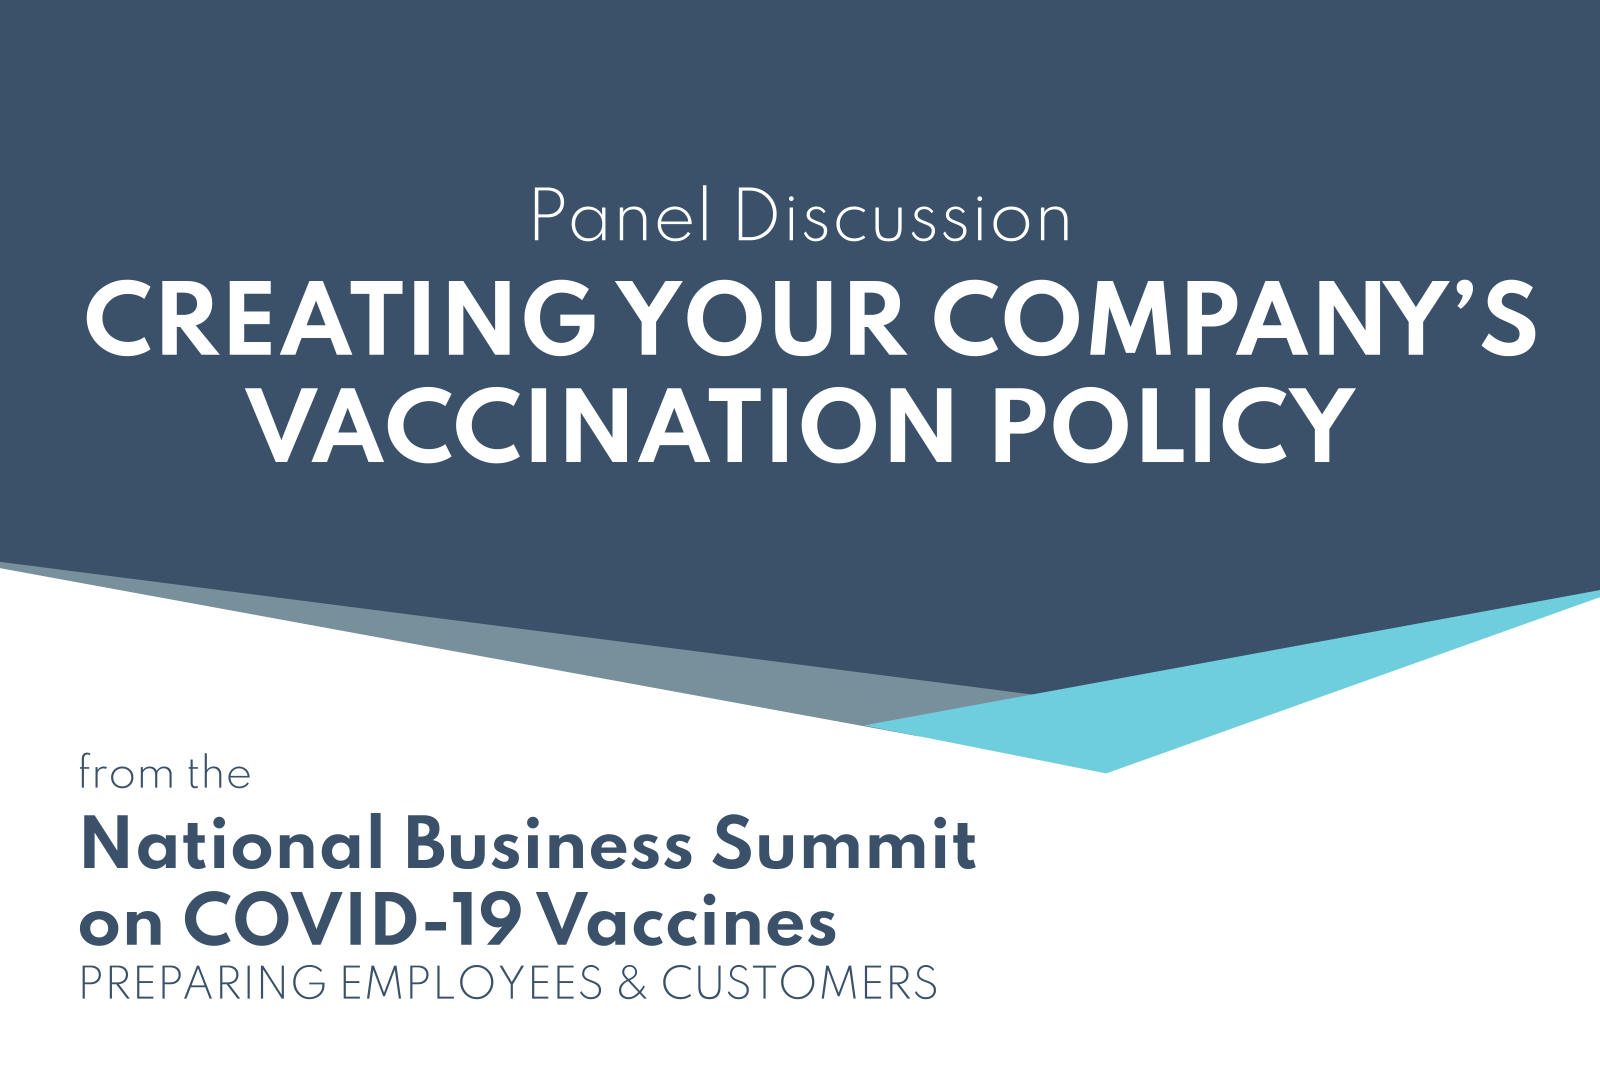 Creating Your Company's Vaccination Policy